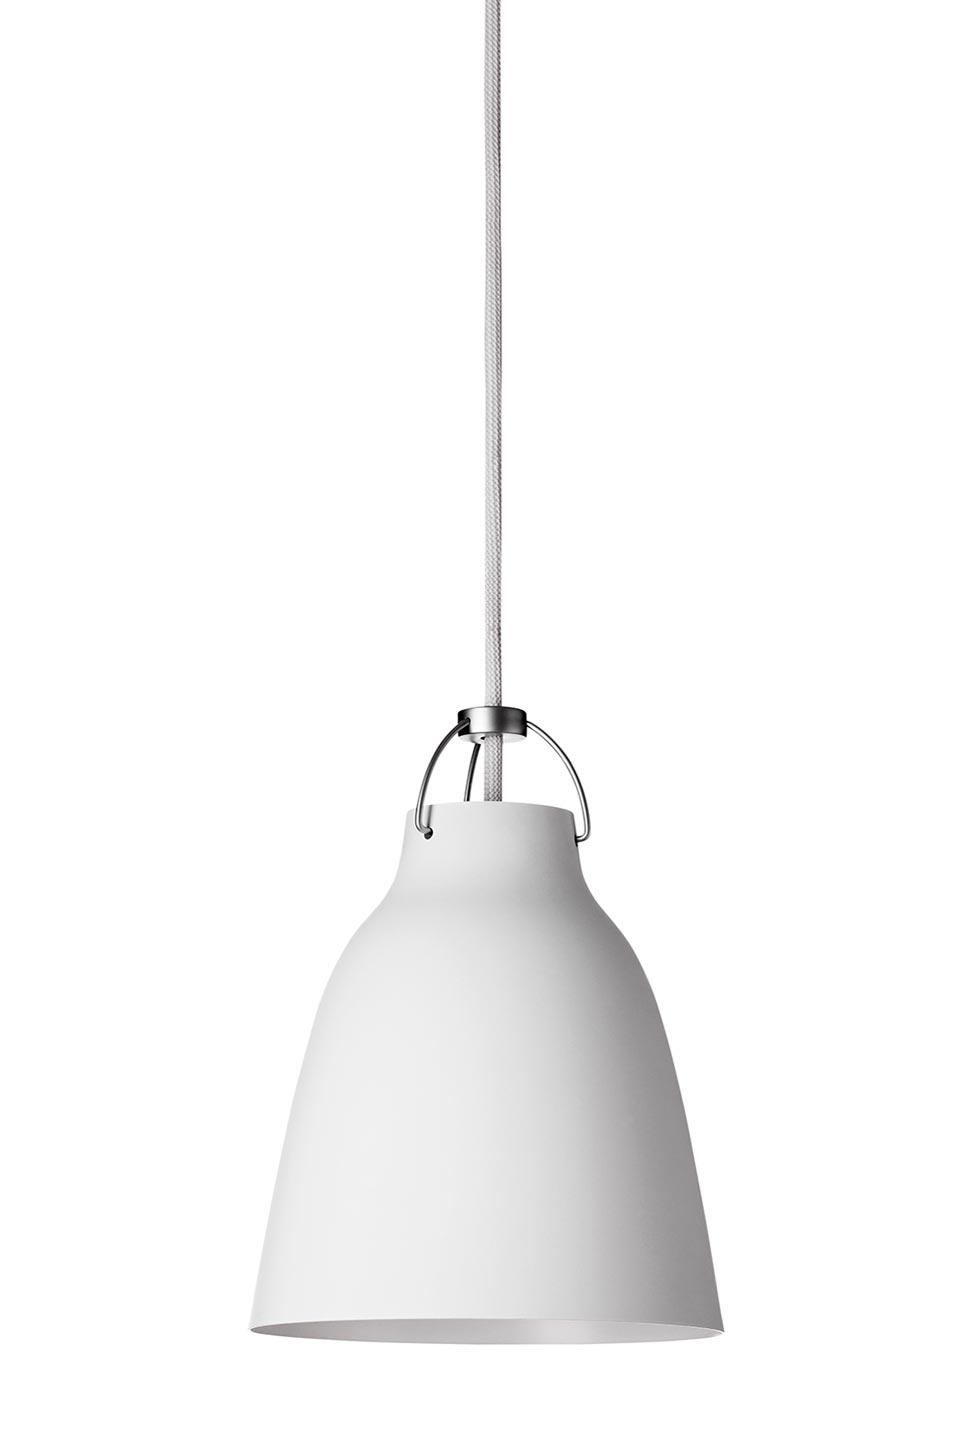 Caravaggio Matt suspension PM blanc mat. Light Years.